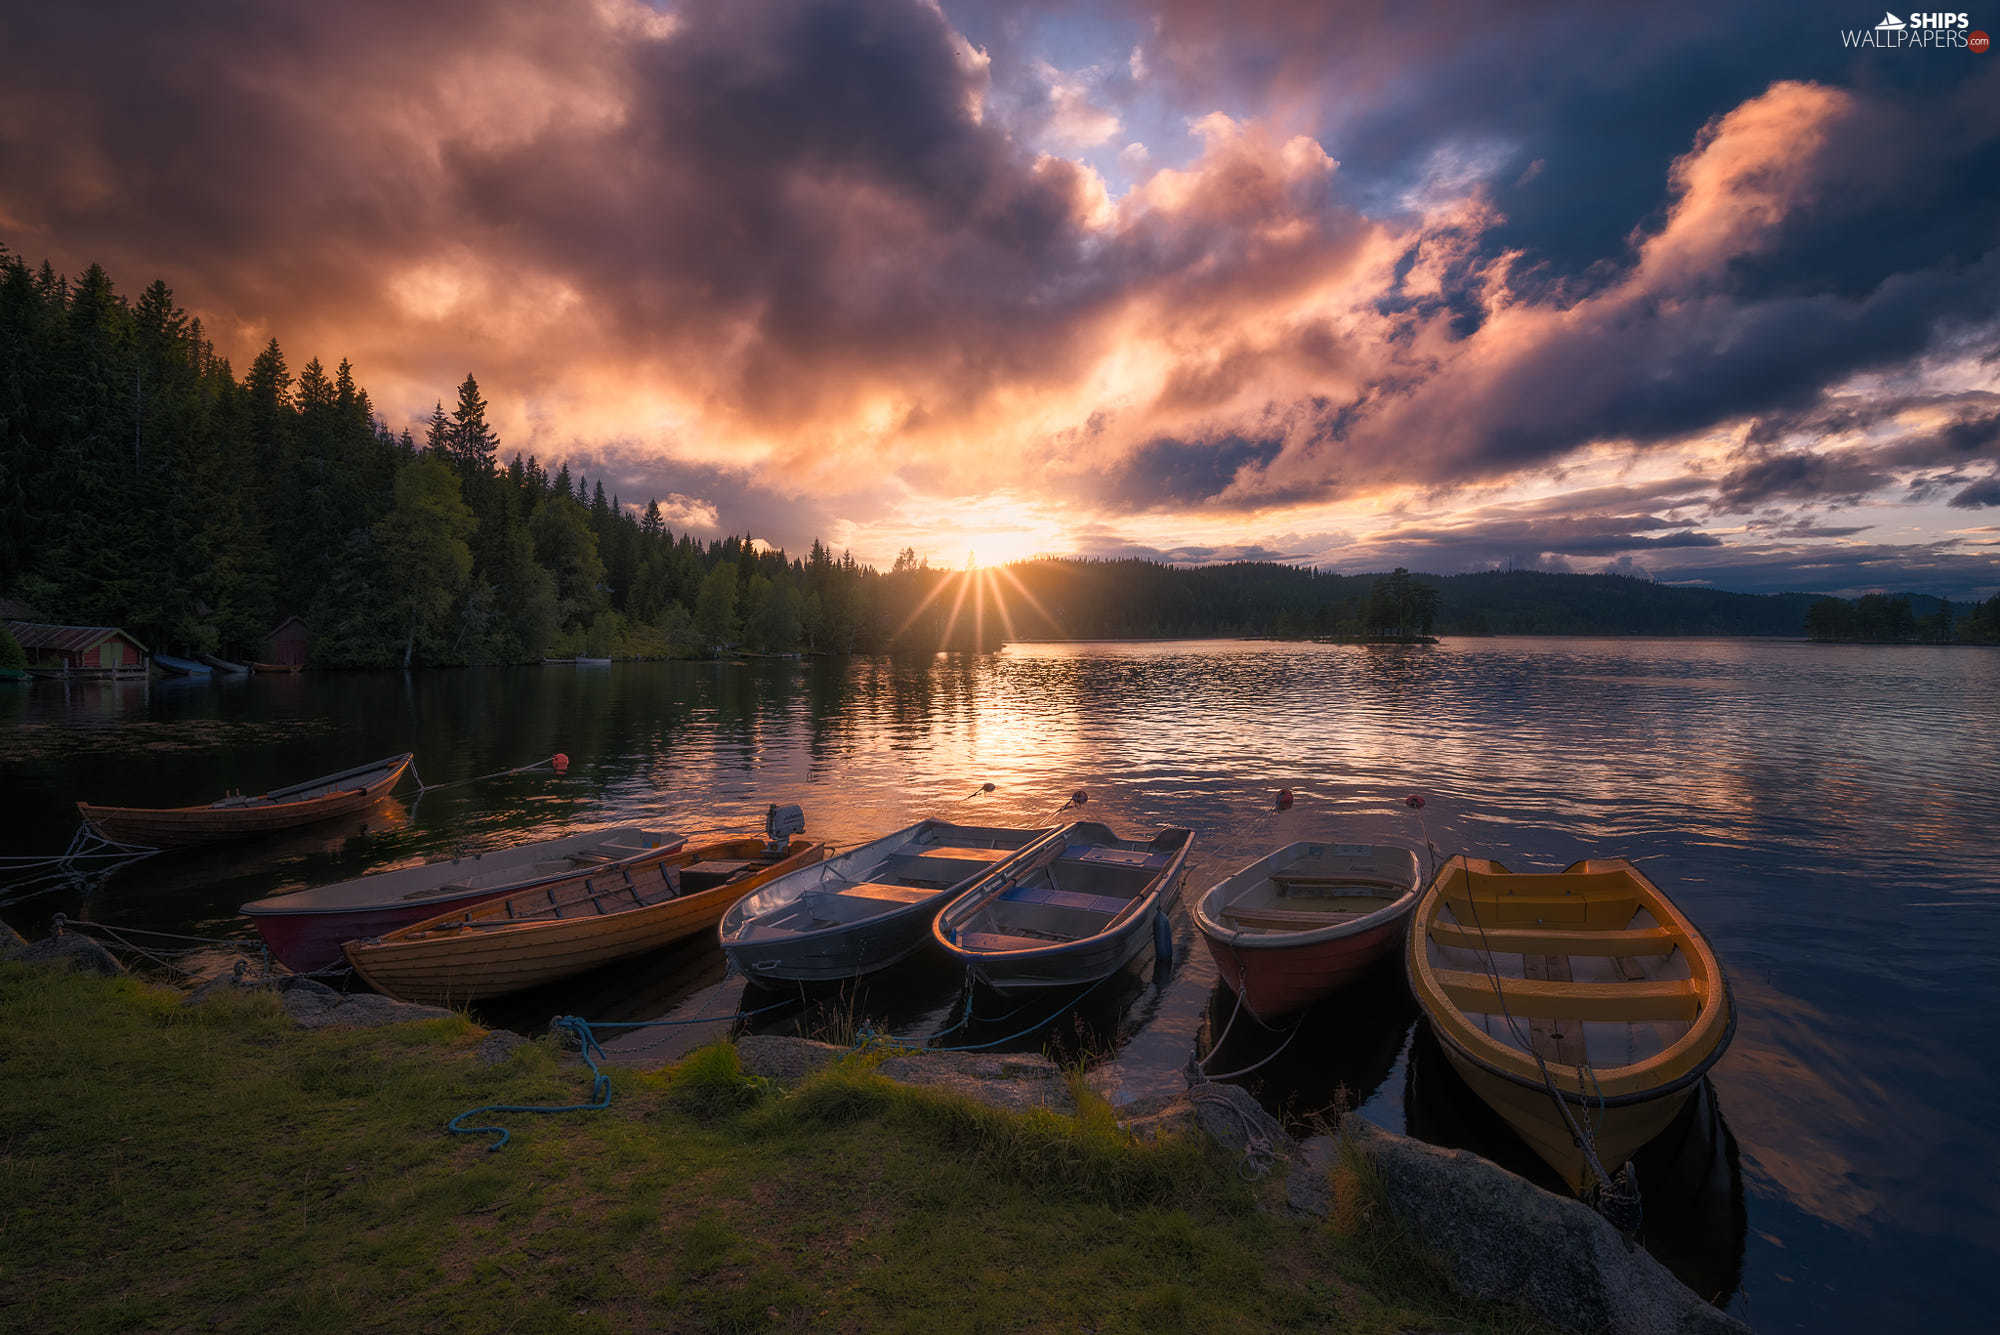 Great Sunsets, Lake Øyangen, viewes, boats, trees, Ringerike, Norway, forest